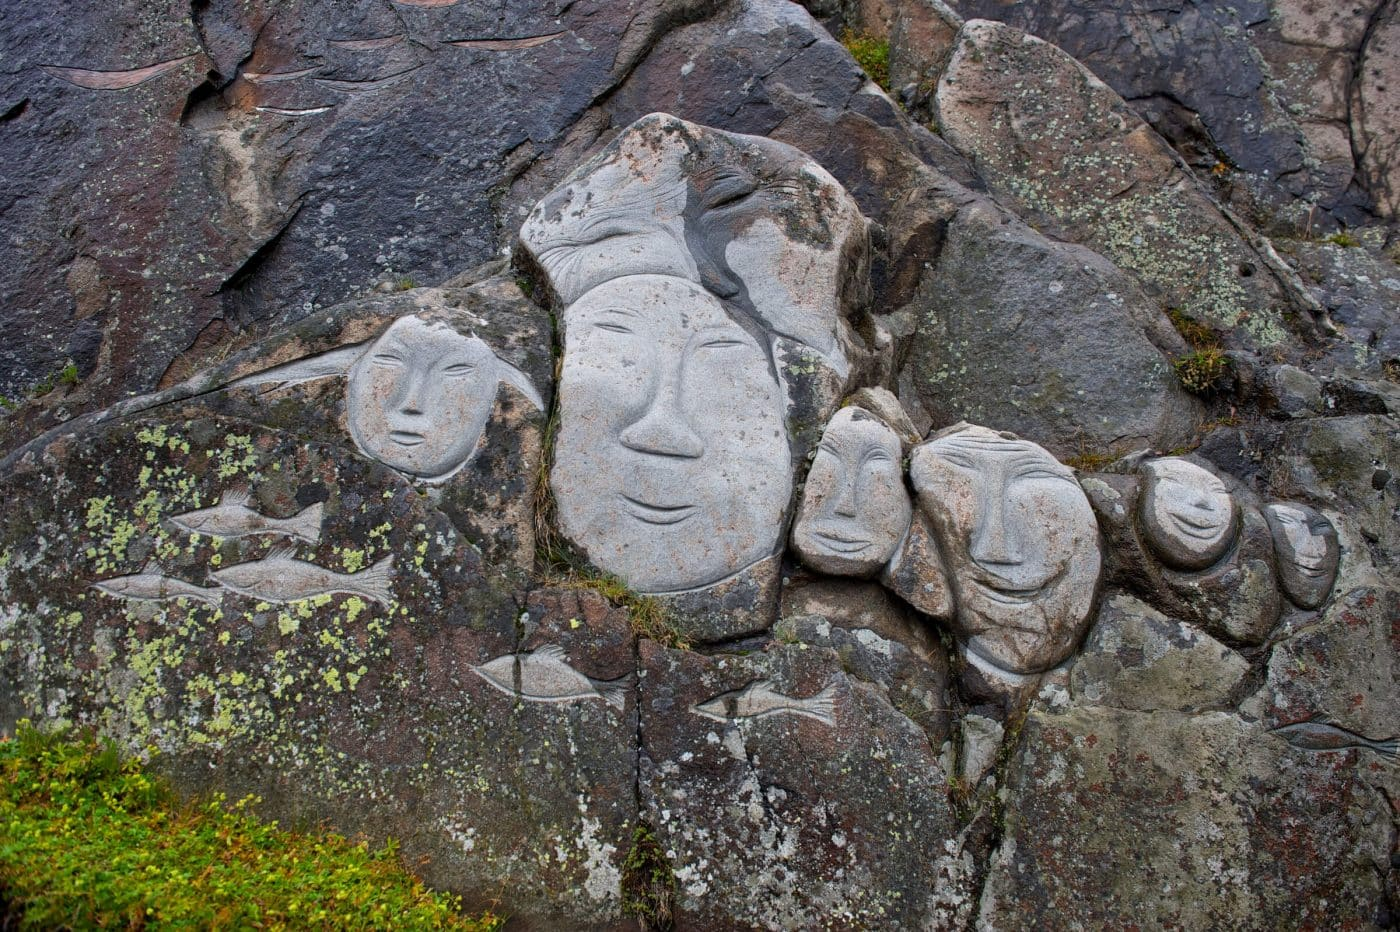 Stone & Man sculptures in Qaqortoq in South Greenland - by Camilla Hey